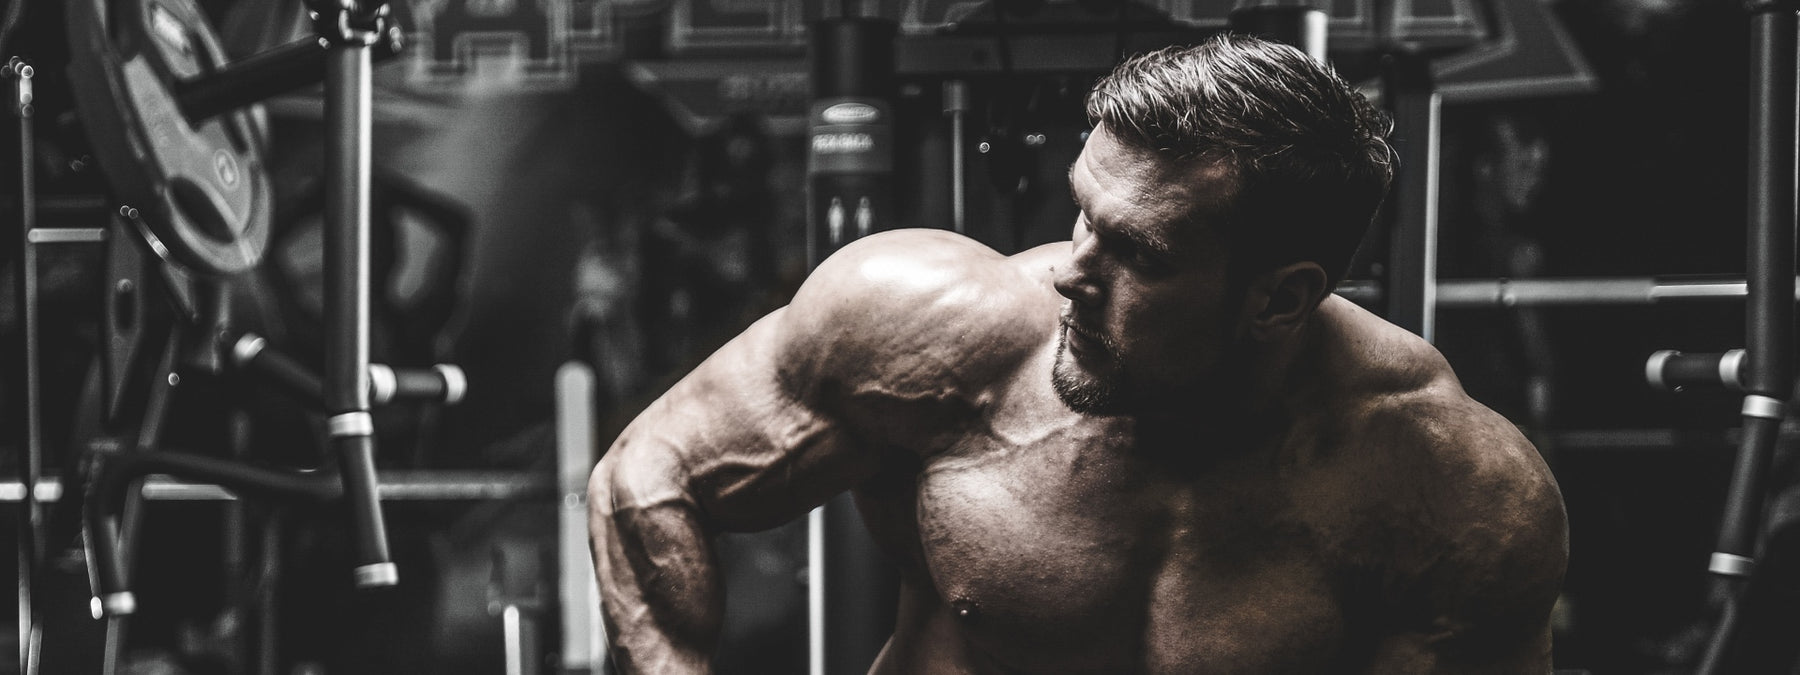 Destroy Bench Press Workouts With These 8 Powerful Tips